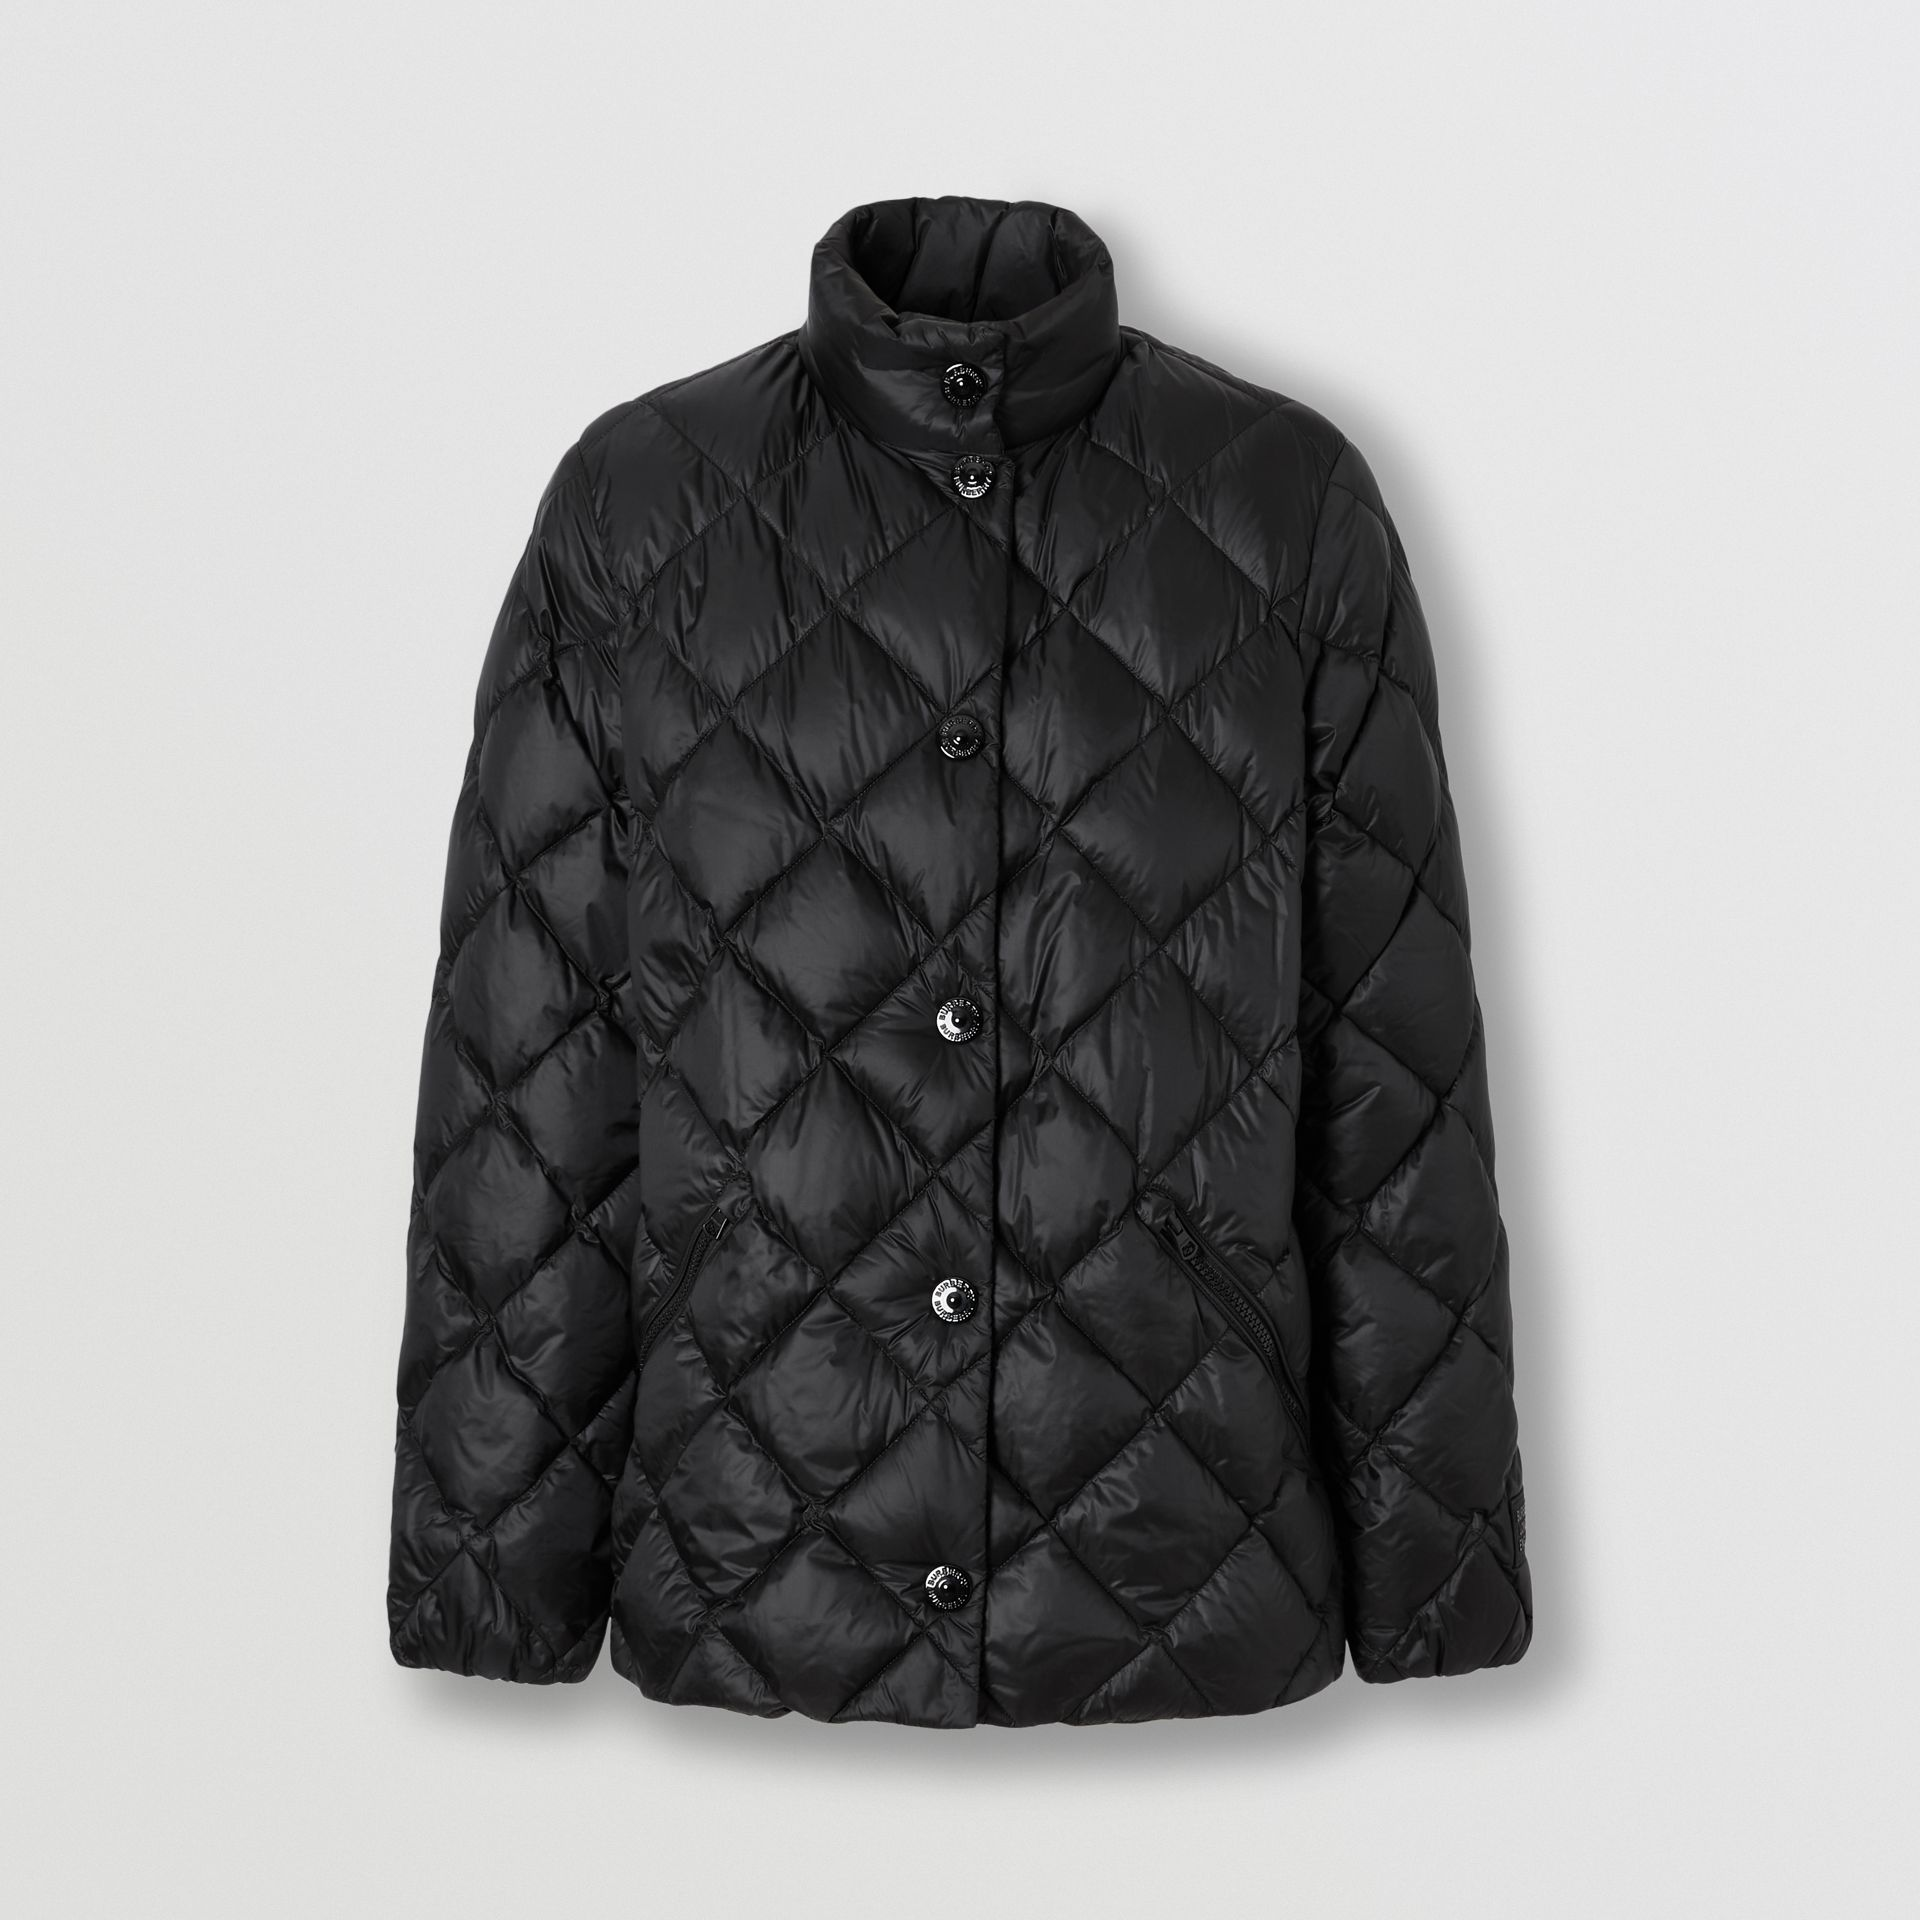 Diamond Quilted Down-filled Jacket in Black - Women | Burberry - gallery image 3